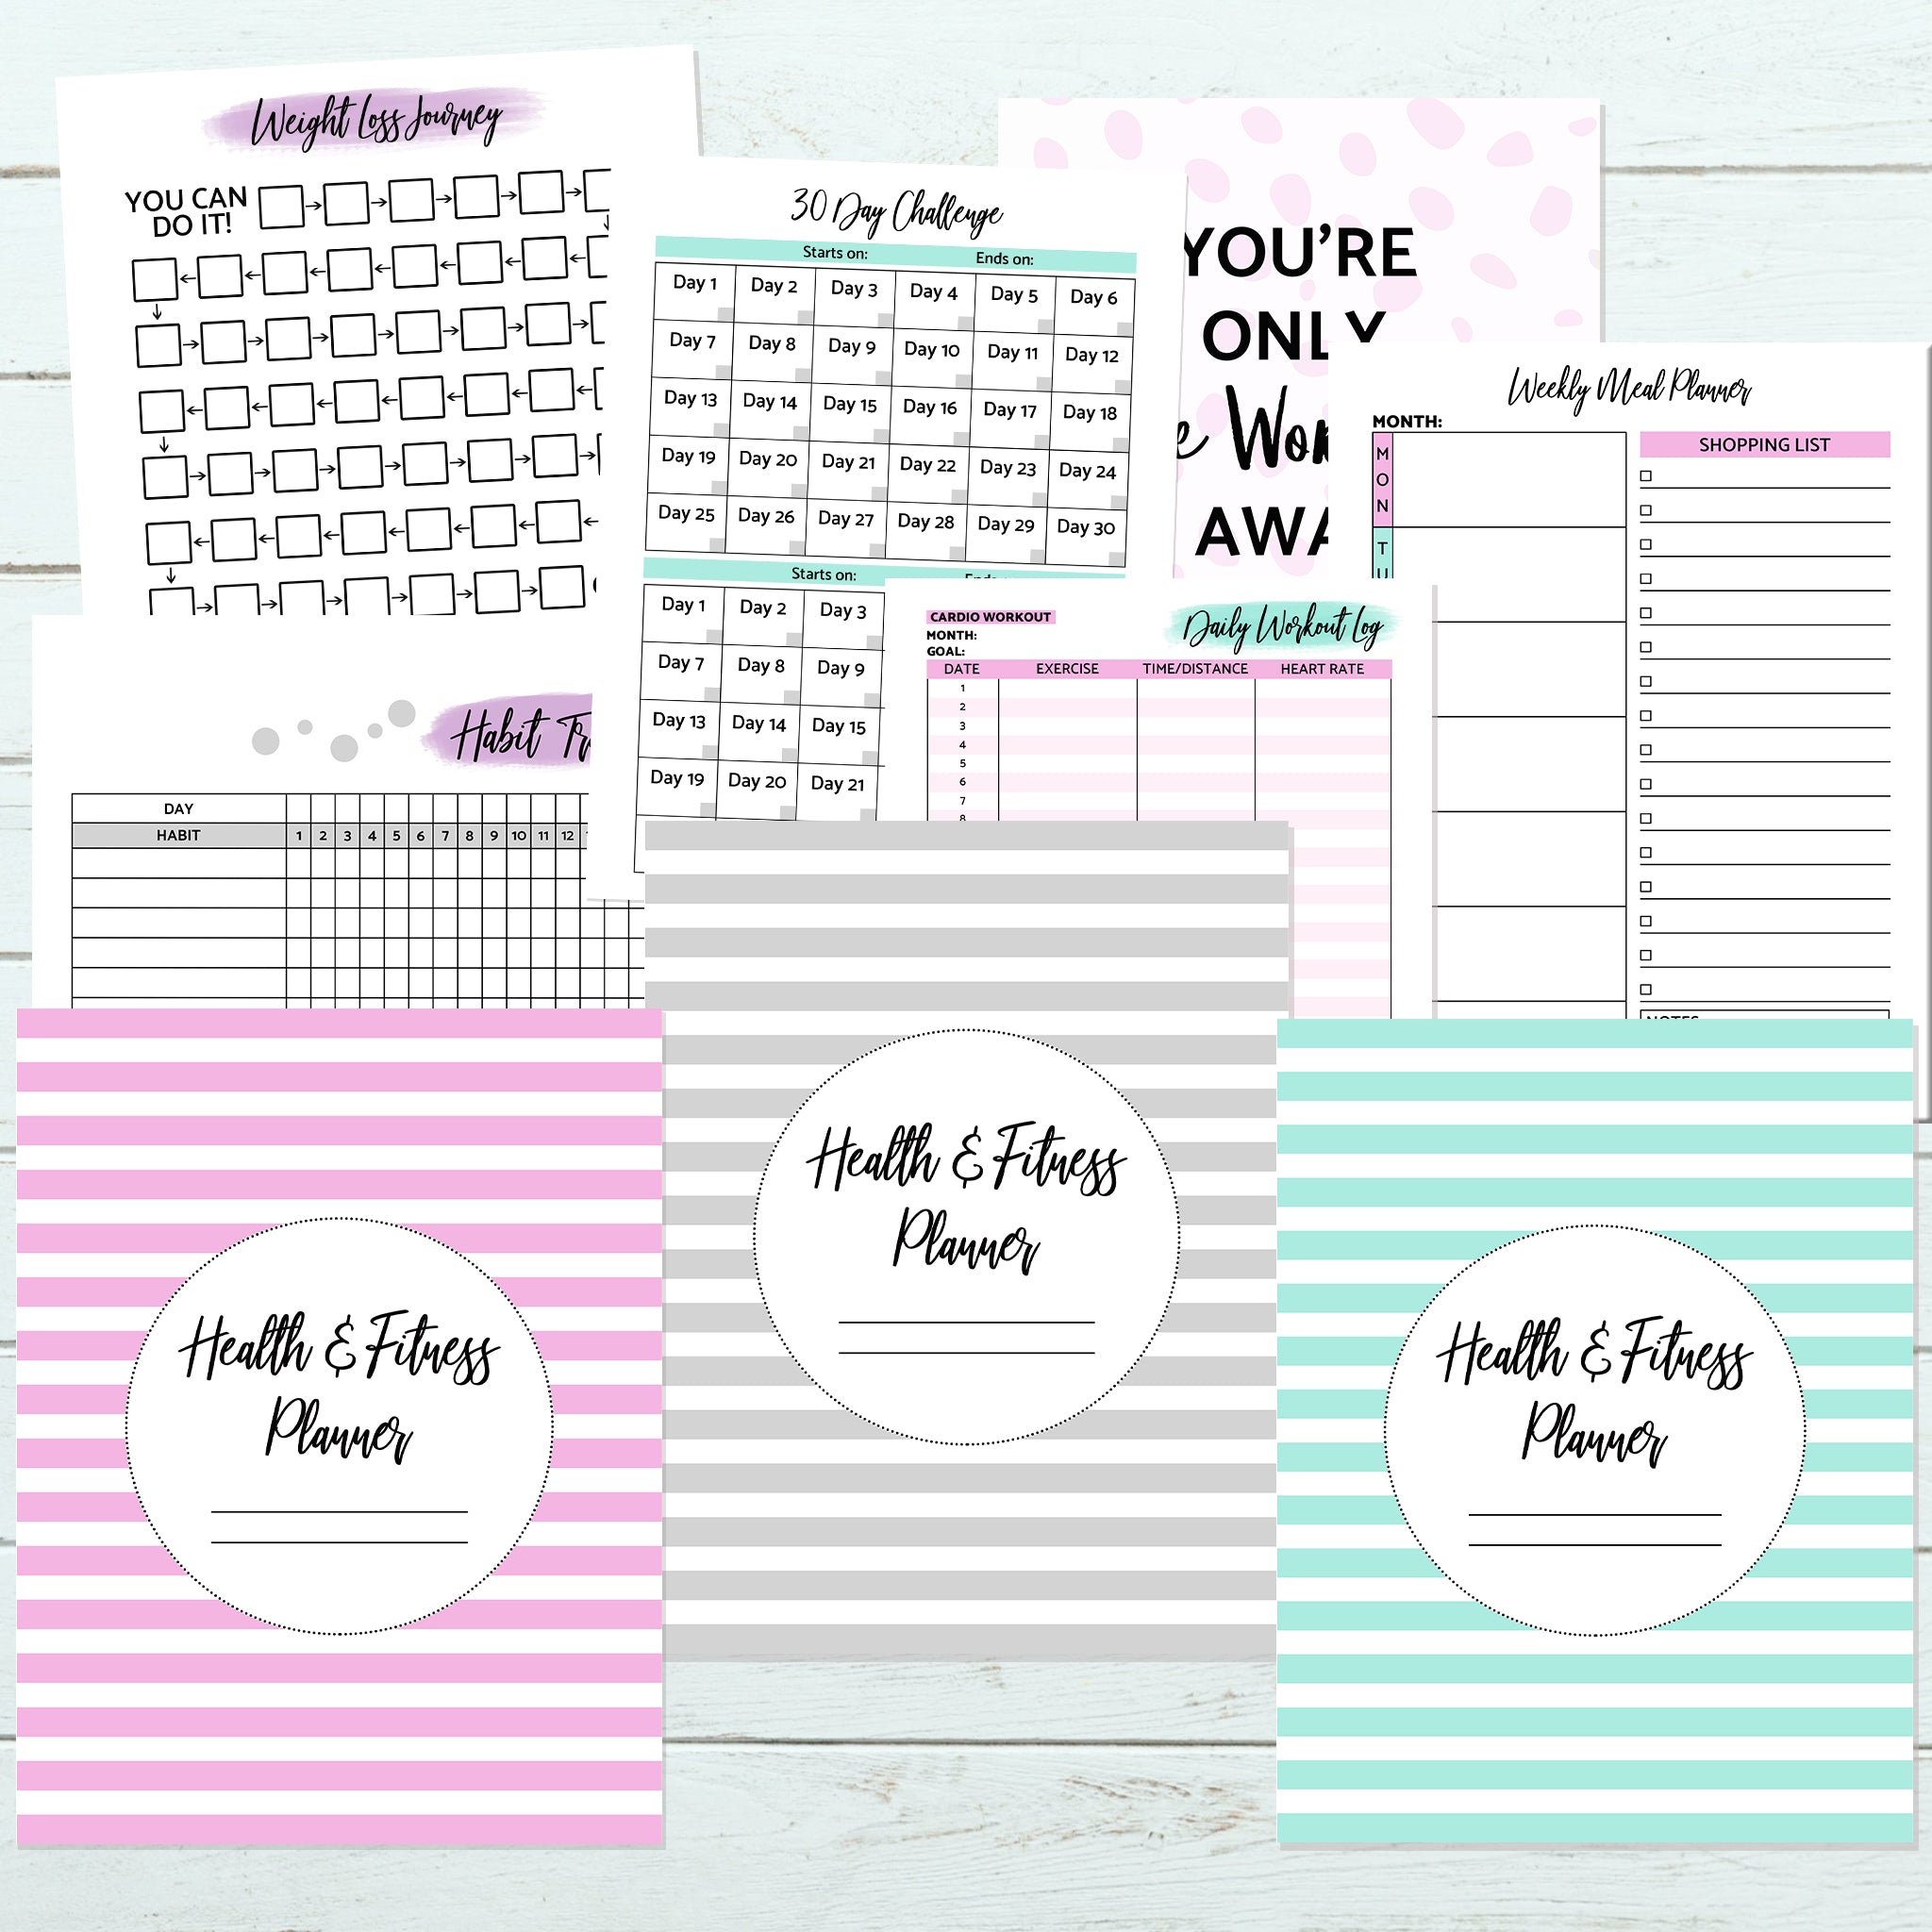 21-page health and fitness planner printable